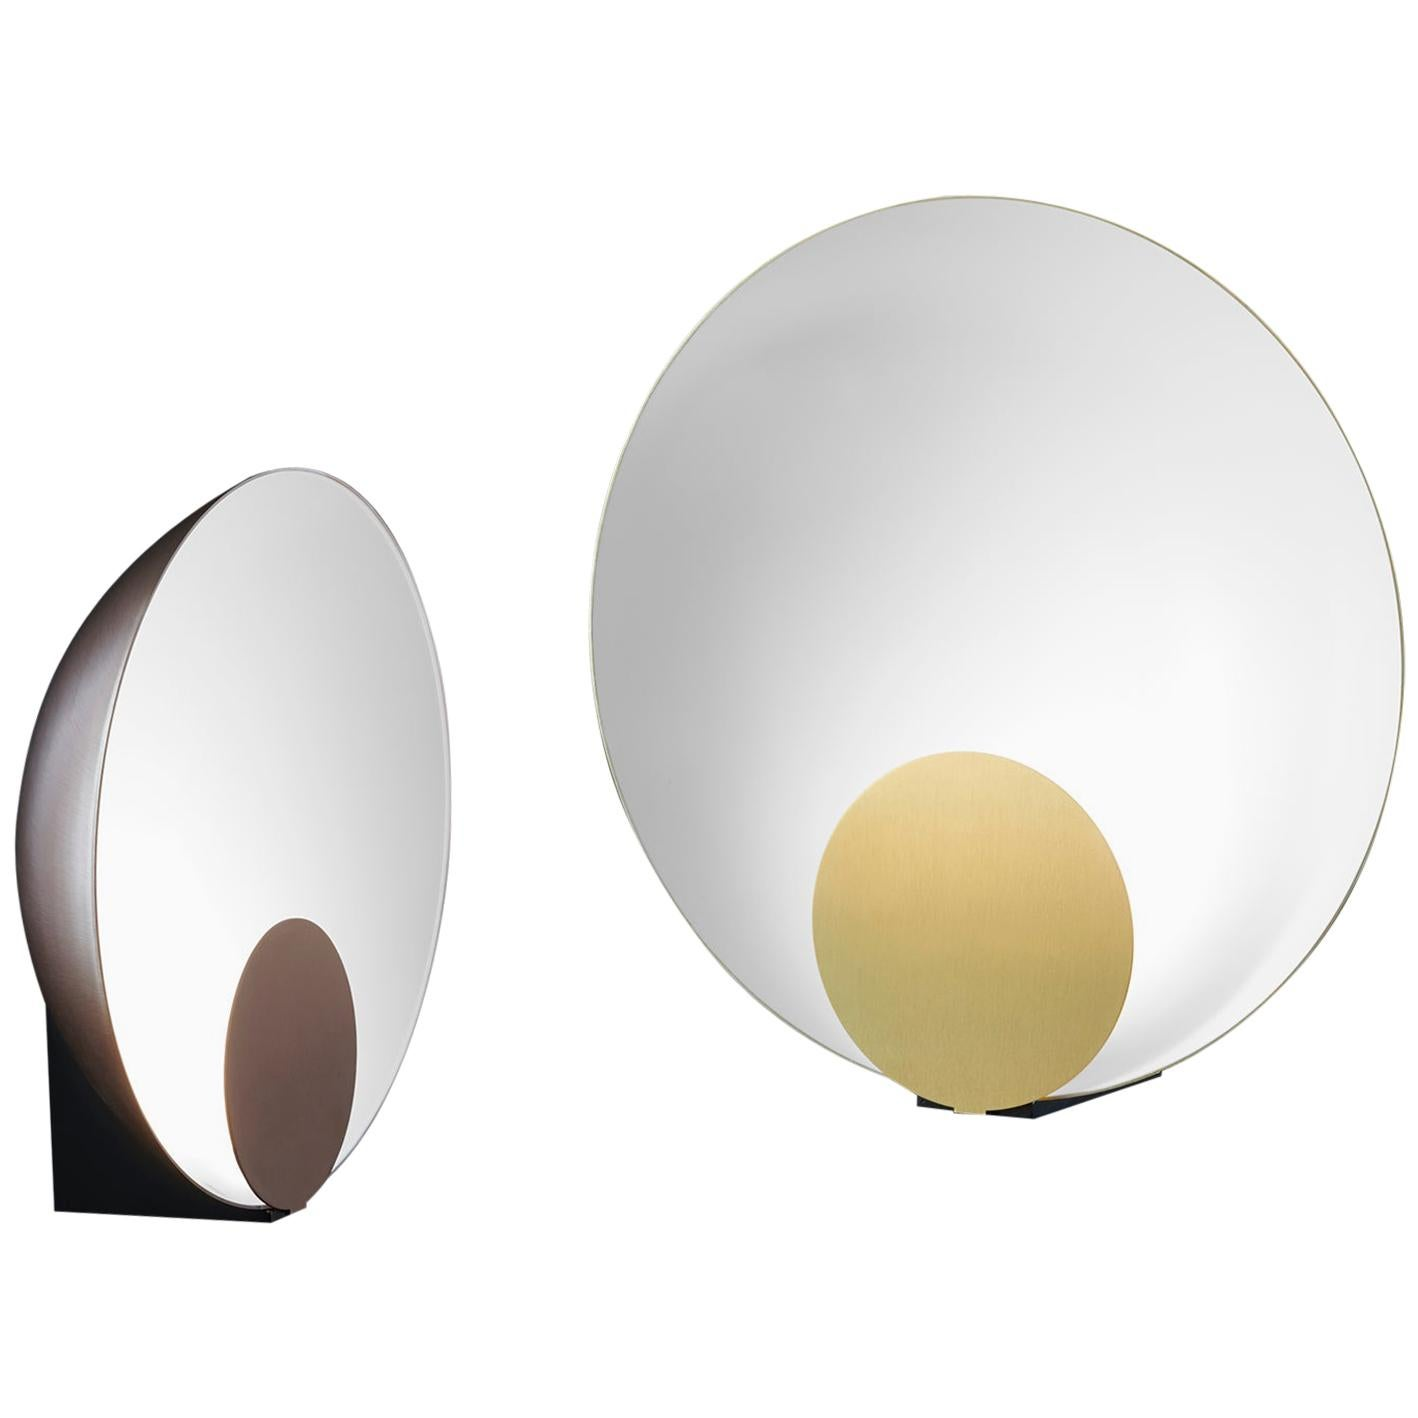 Set of Two Table Lamps 'Siro' Designed by Marta Perla, Manufactured by Oluce